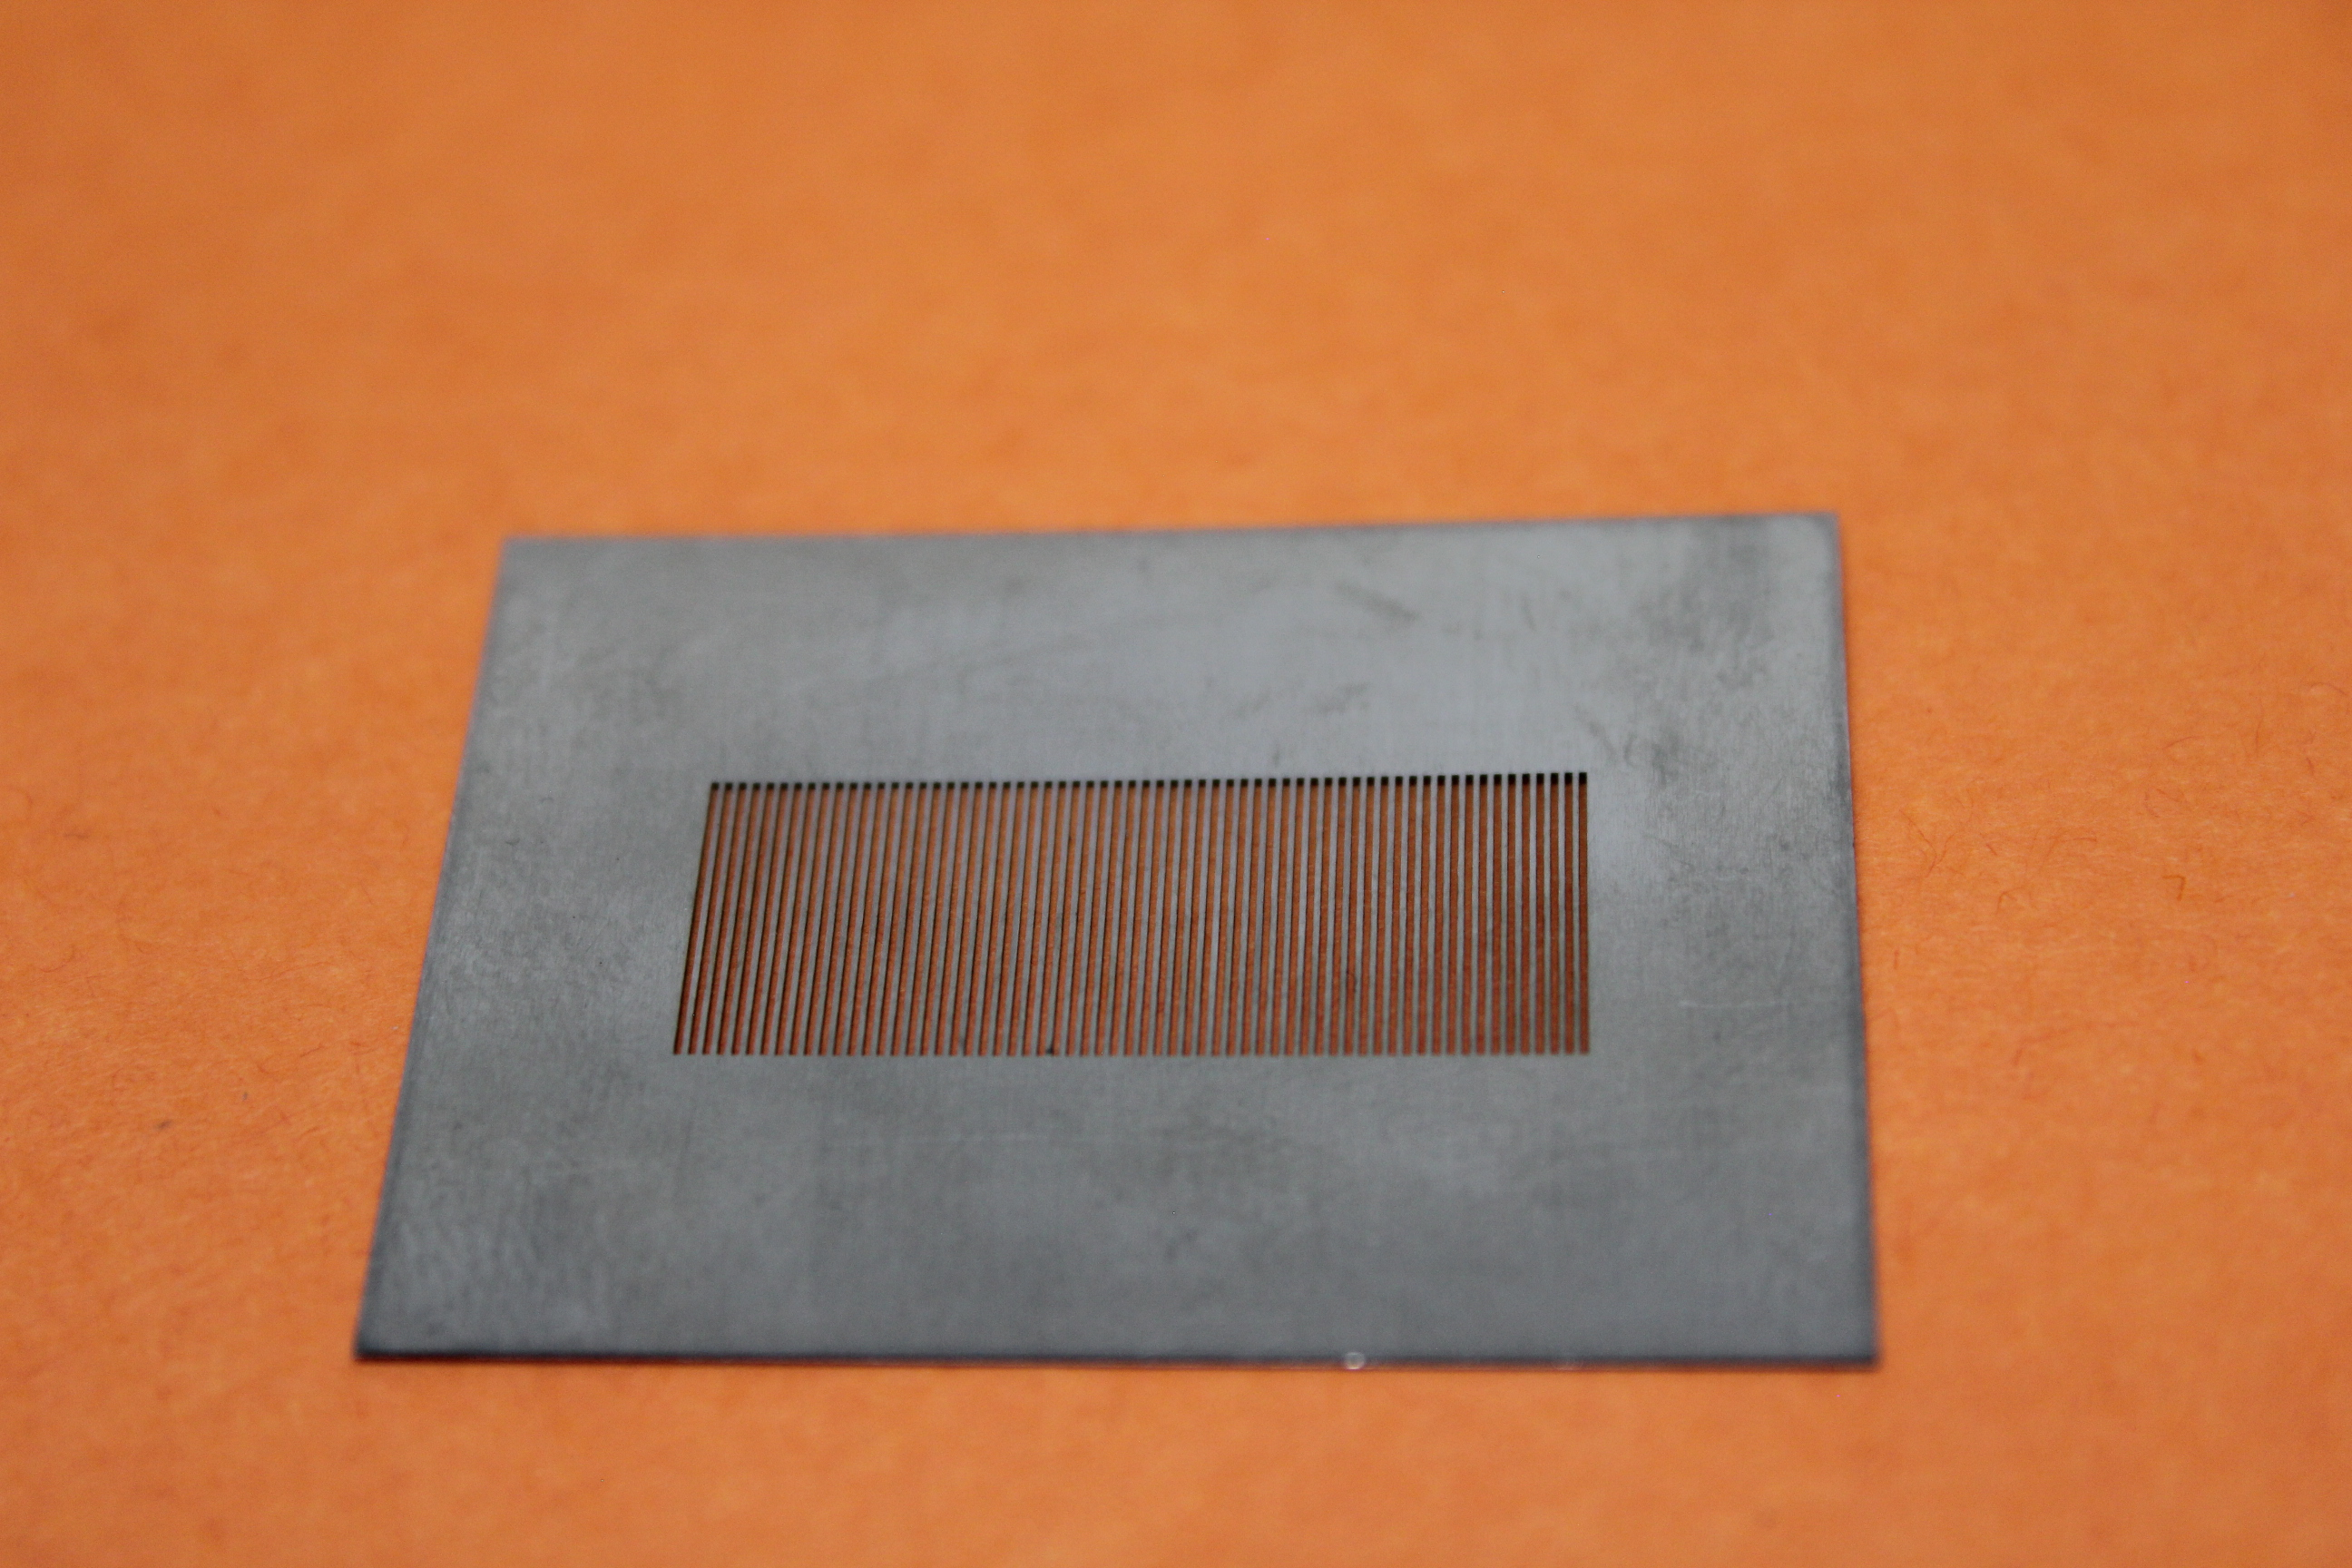 Laser cutting 0.0015″ slots into stainless steel